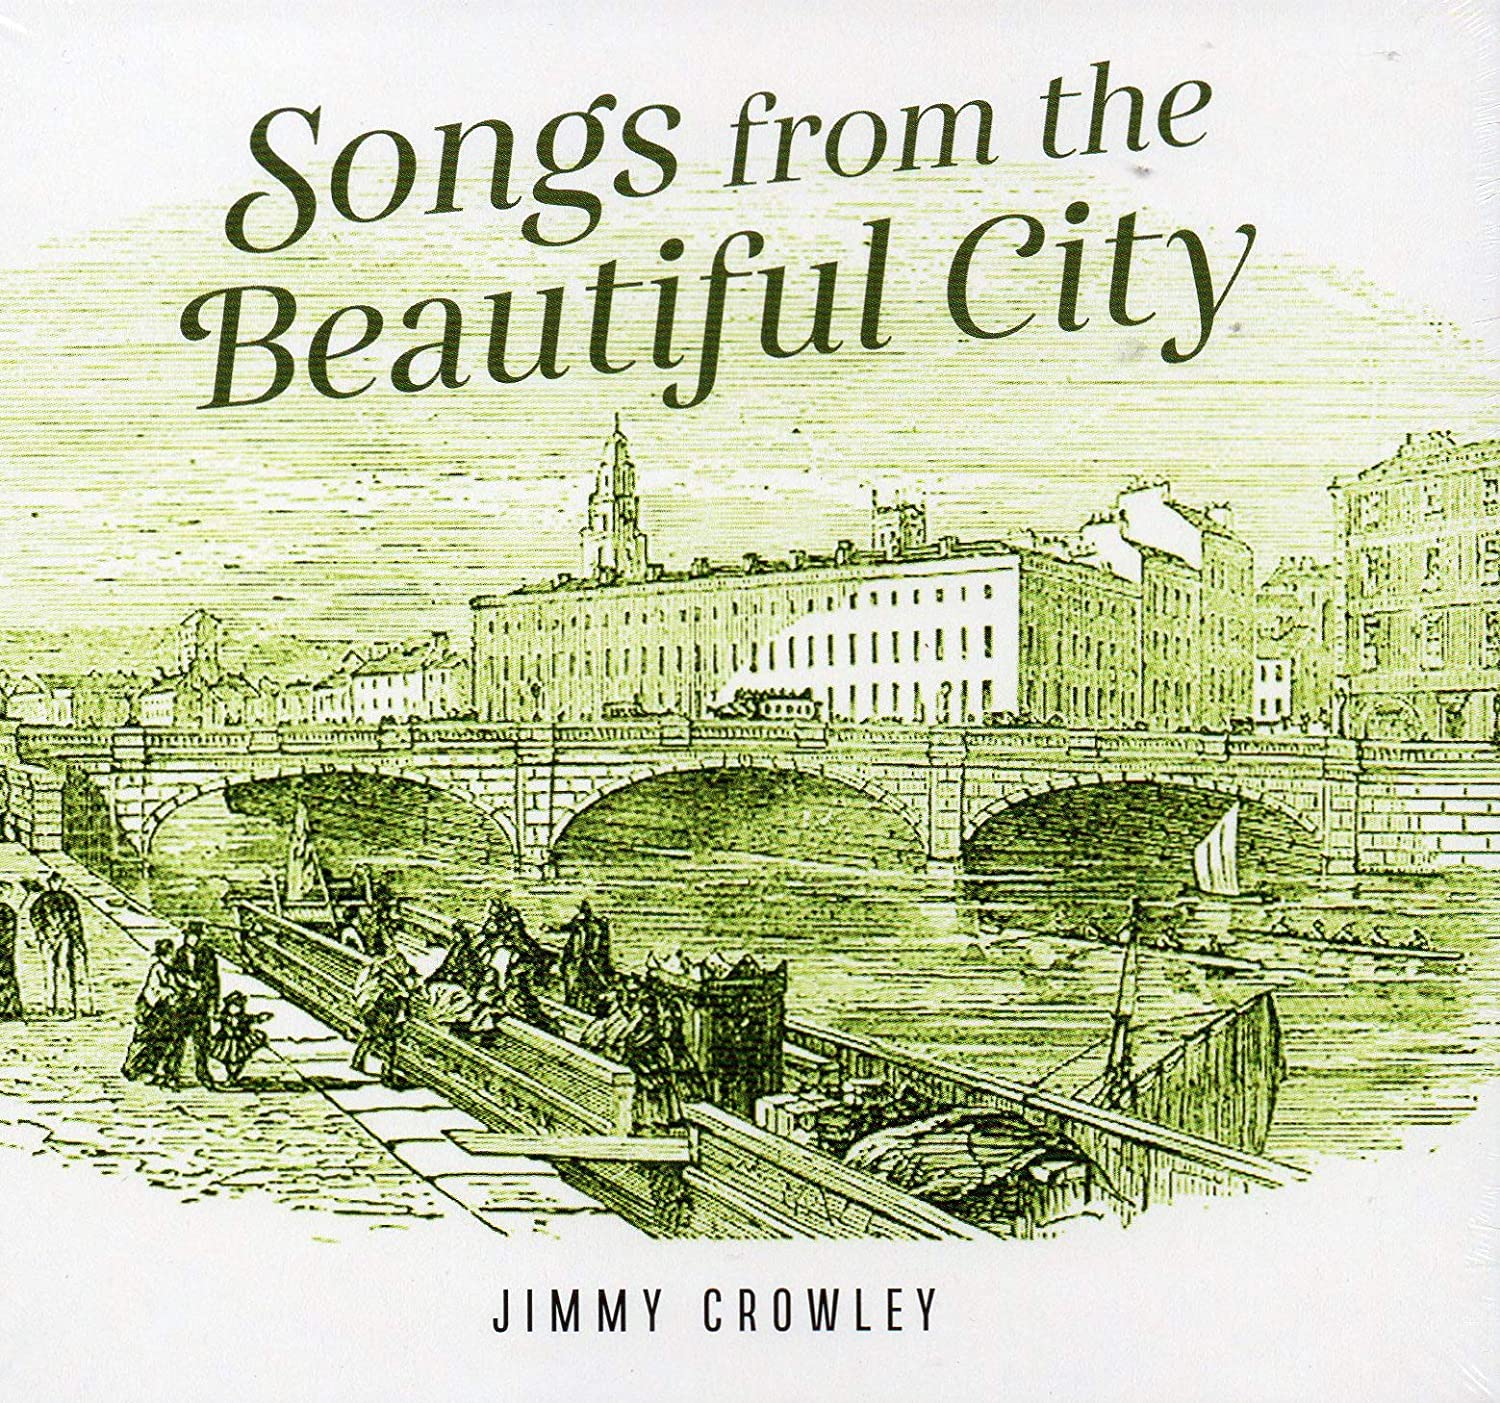 Songs from the beautiful city